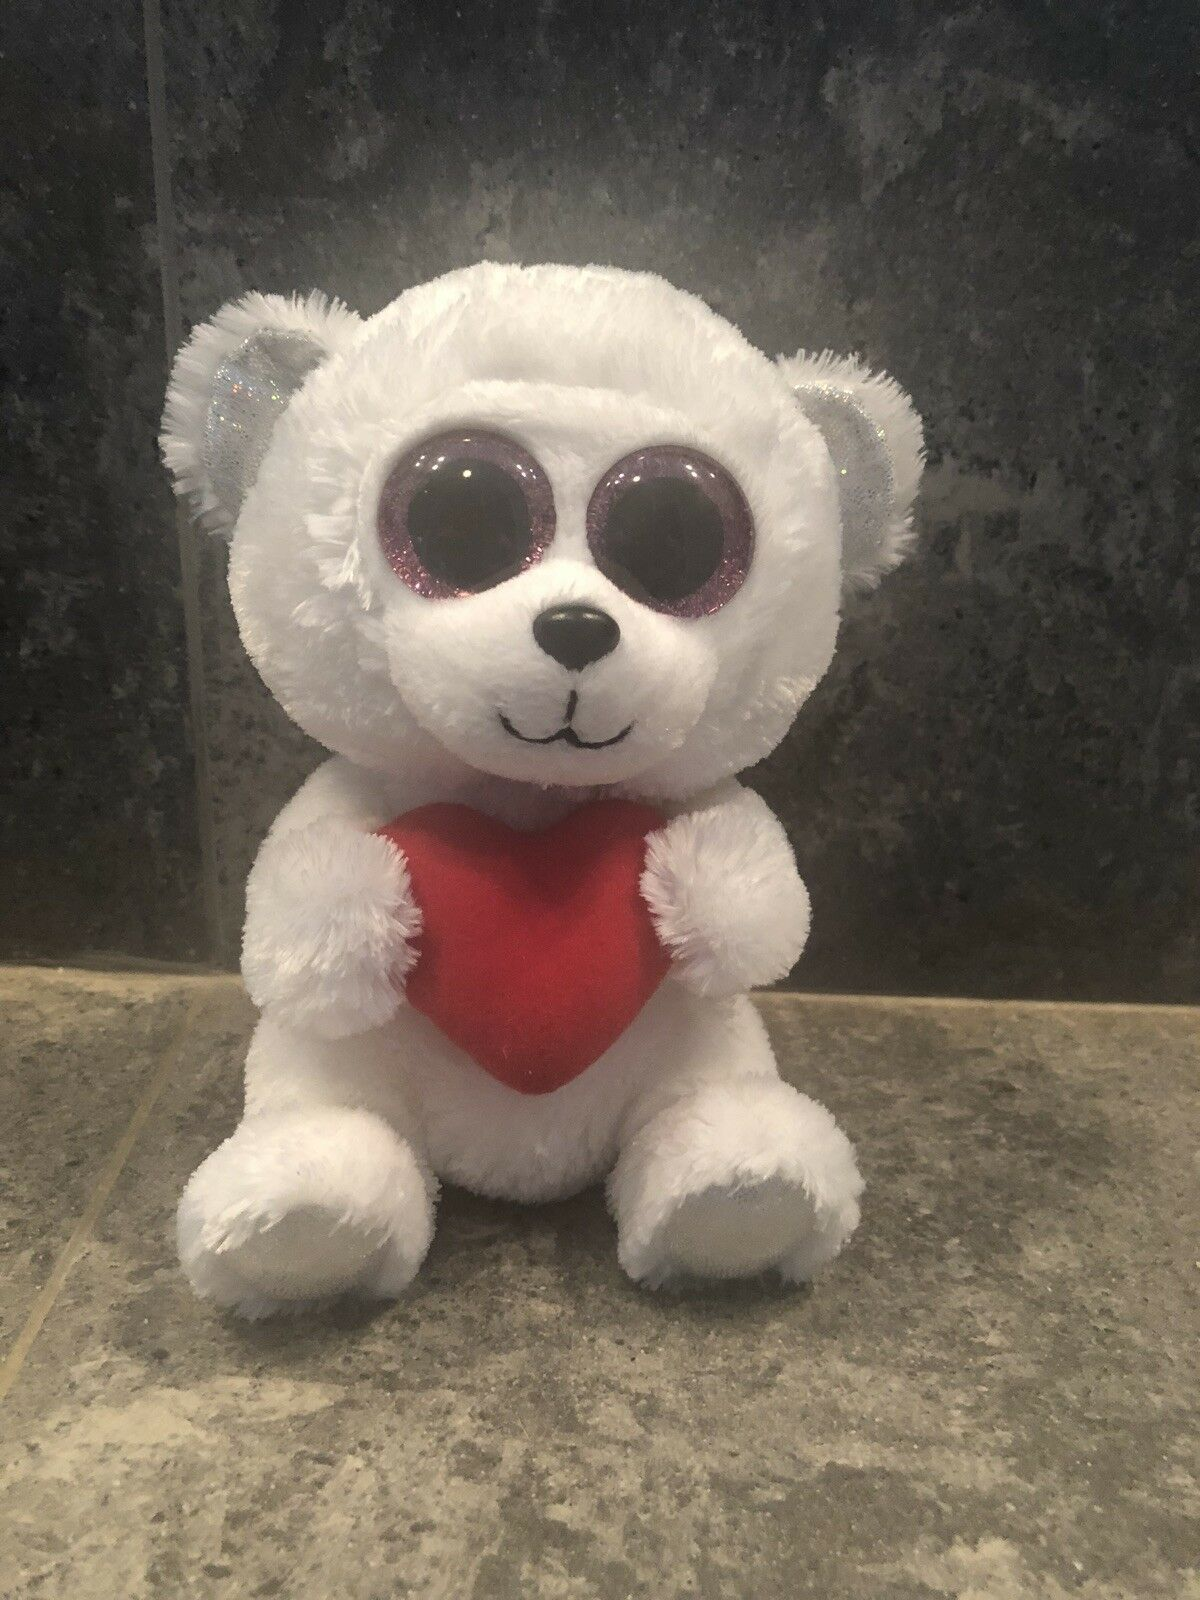 AUTHENTIC AUTHENTIC AUTHENTIC PredOTYPE Beanie BOO WHITE BEAR Museum Quality Rare 0df18f